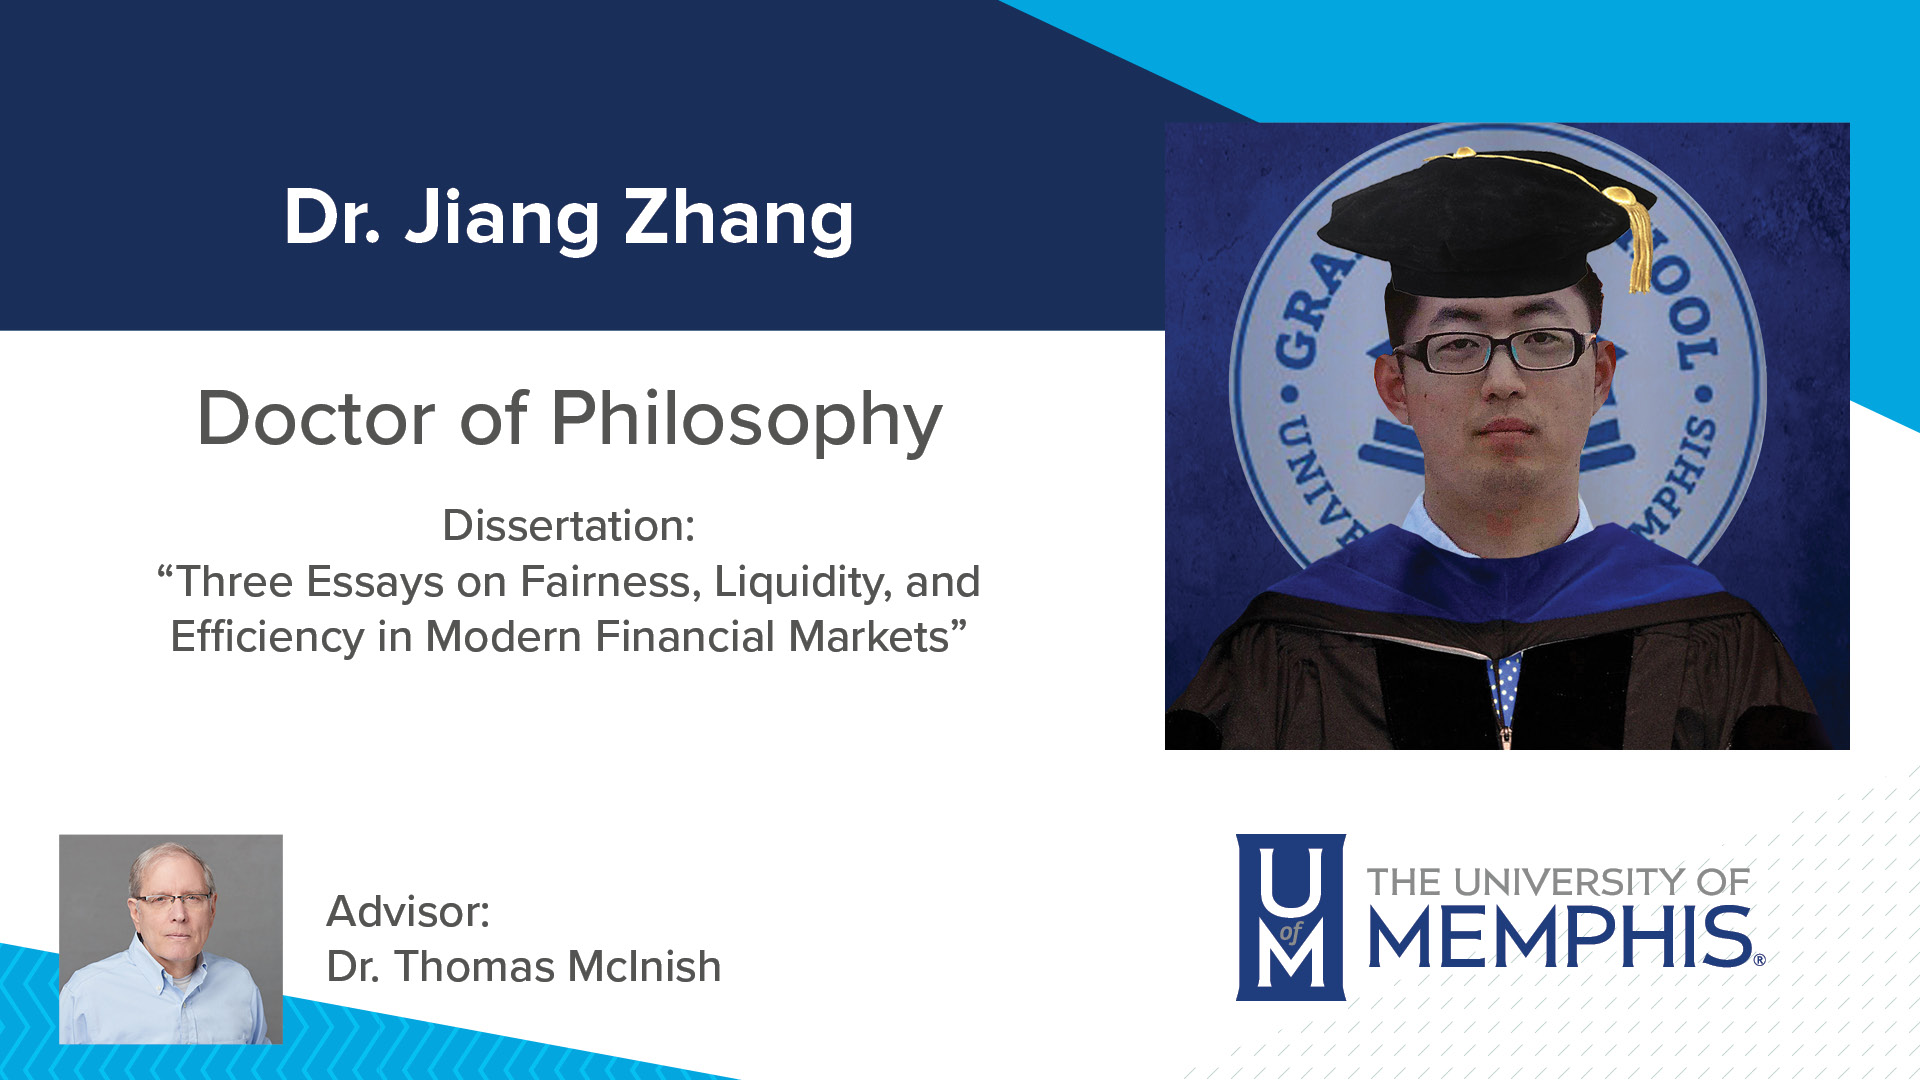 """Dr. Jiang Zhang Dissertation: """"Three Essays on Fairness, Liquidity, and Efficiency in Modern Financial Markets"""" Major Professor: Dr. Thomas McInish"""